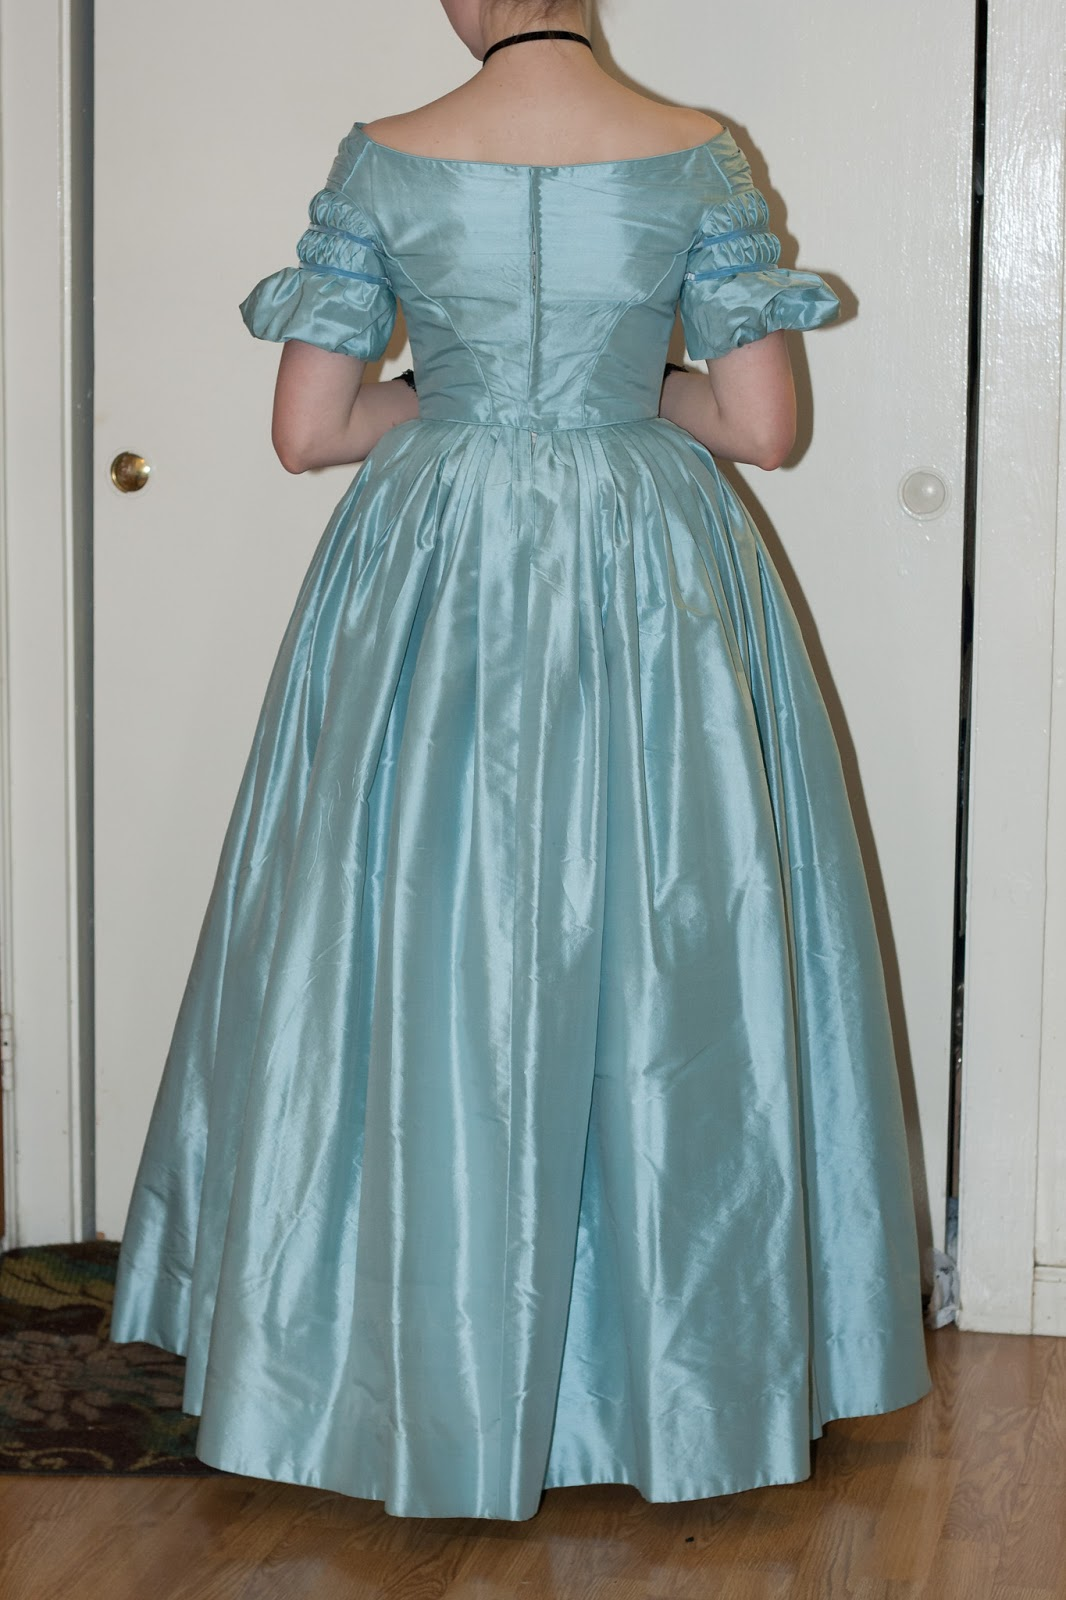 Frolicking Frocks: Late 1830s Ballgown